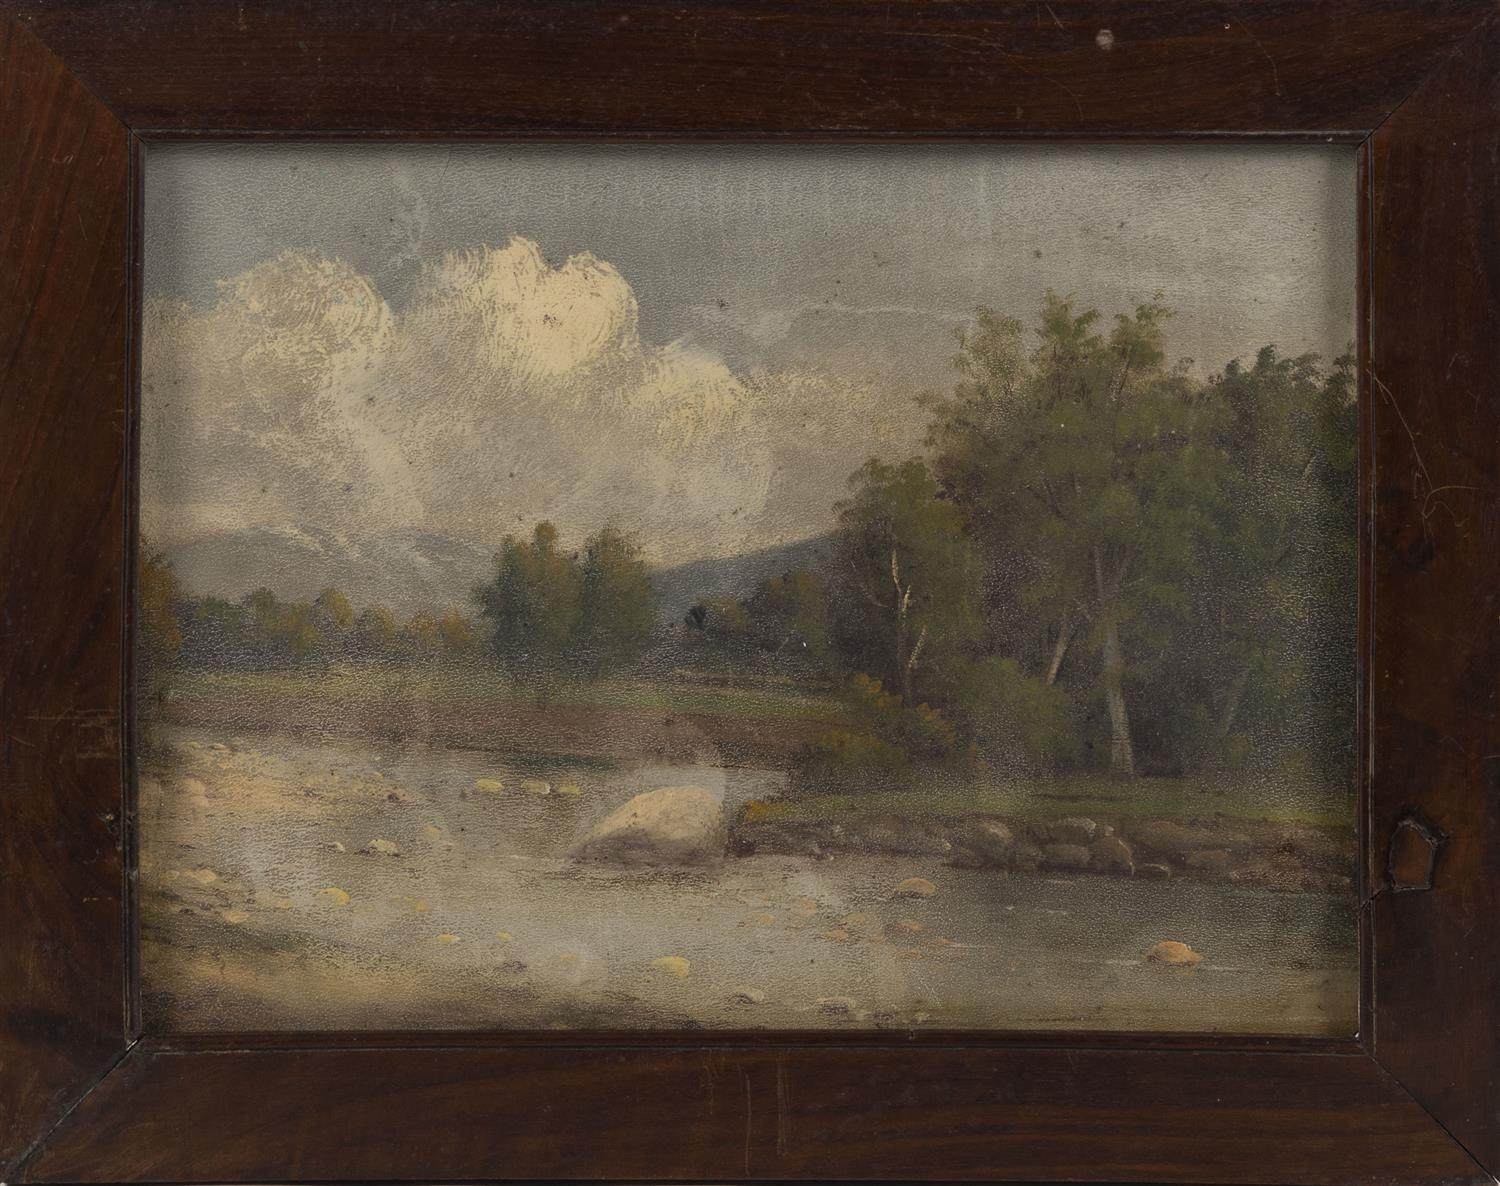 """AMERICAN SCHOOL, Late 19th Century, Landscape with mountain and river., Oil on artist board, 9"""" x 12"""". Framed 11.5"""" x 14.5""""."""